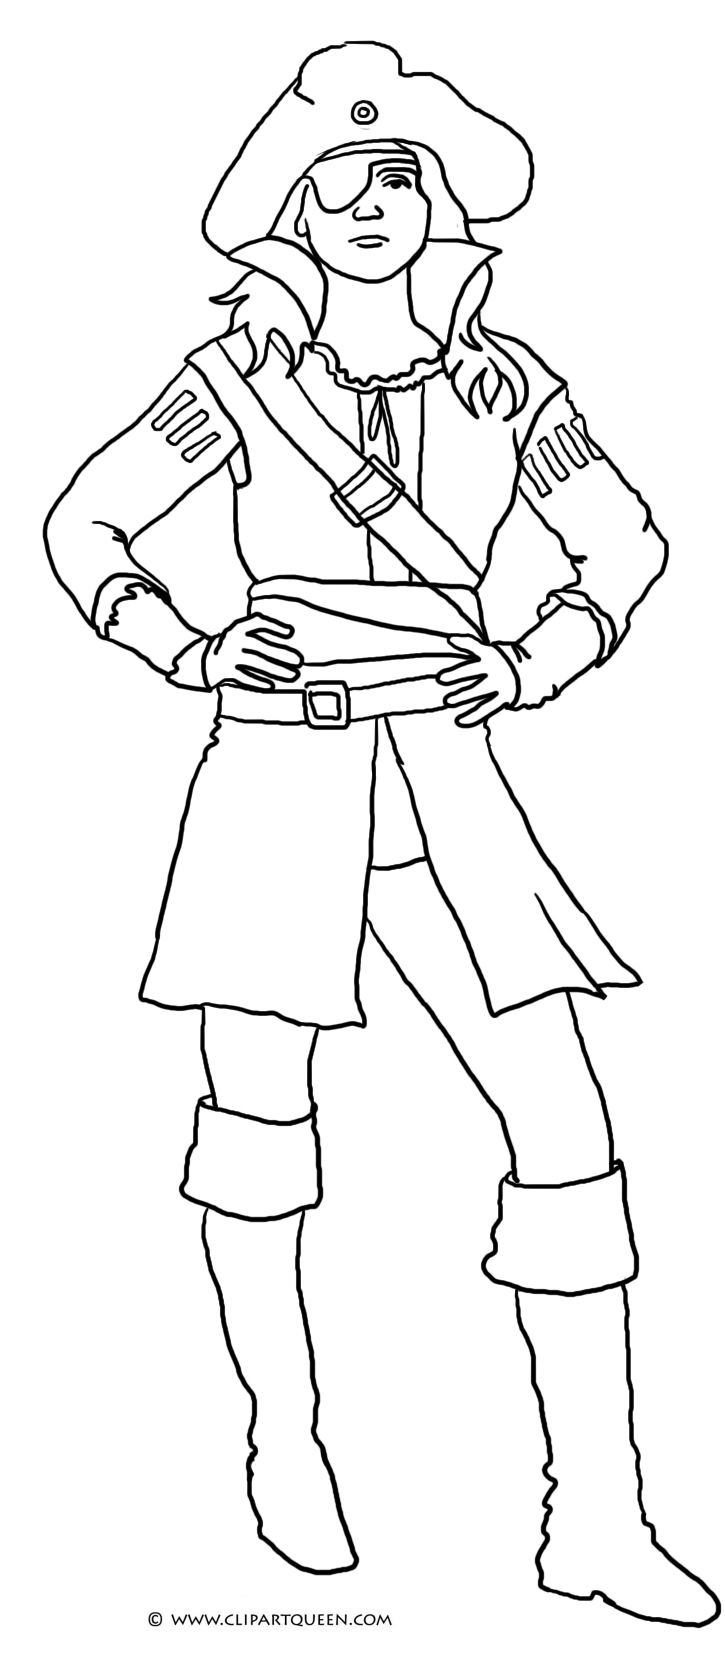 Pirate colouring pages to print - Pirate Girl